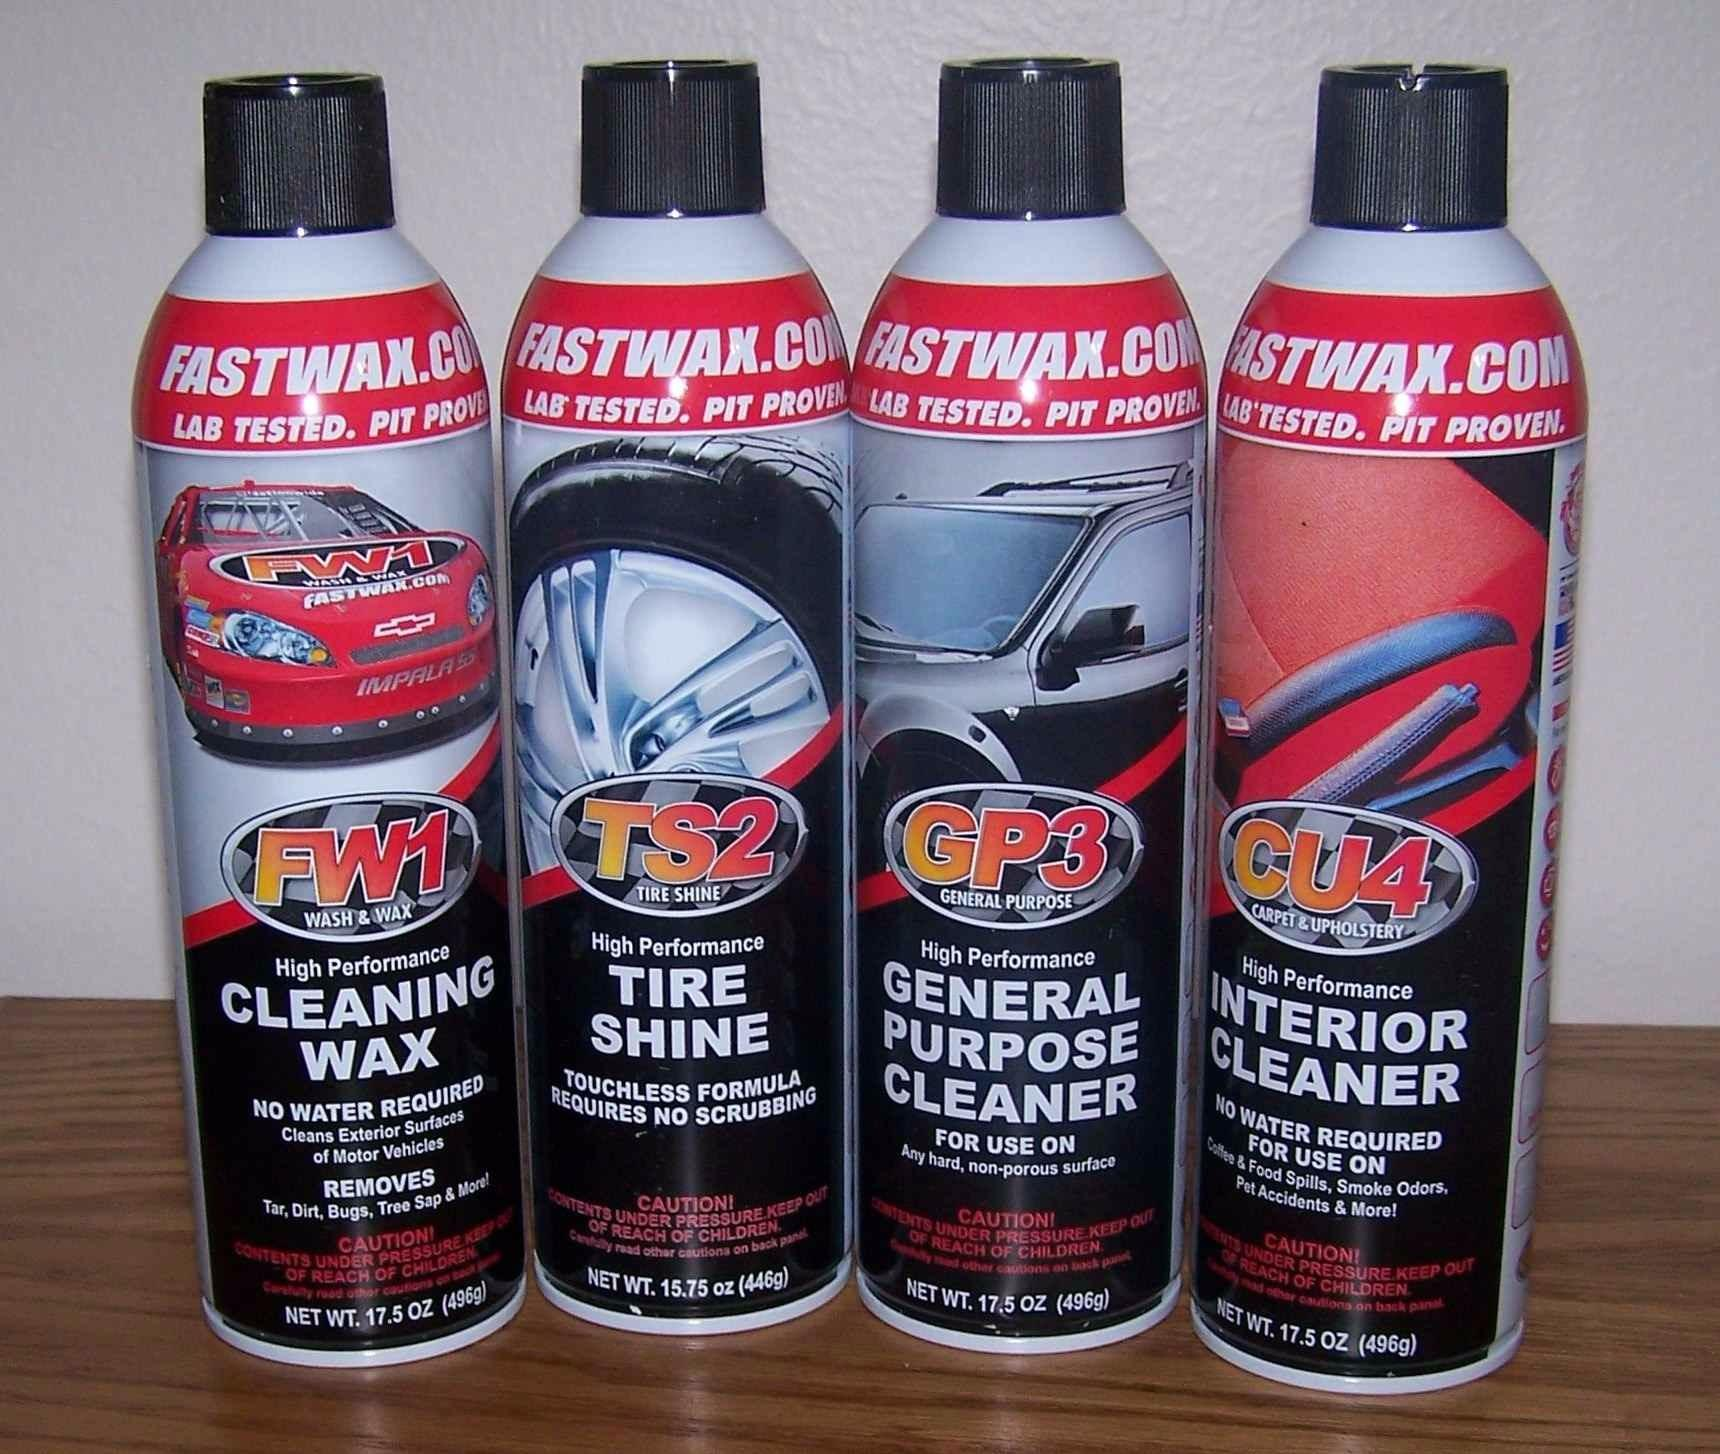 FW1 Car Care Products - Cypress, TX 77433 - (281)256-0215 | ShowMeLocal.com